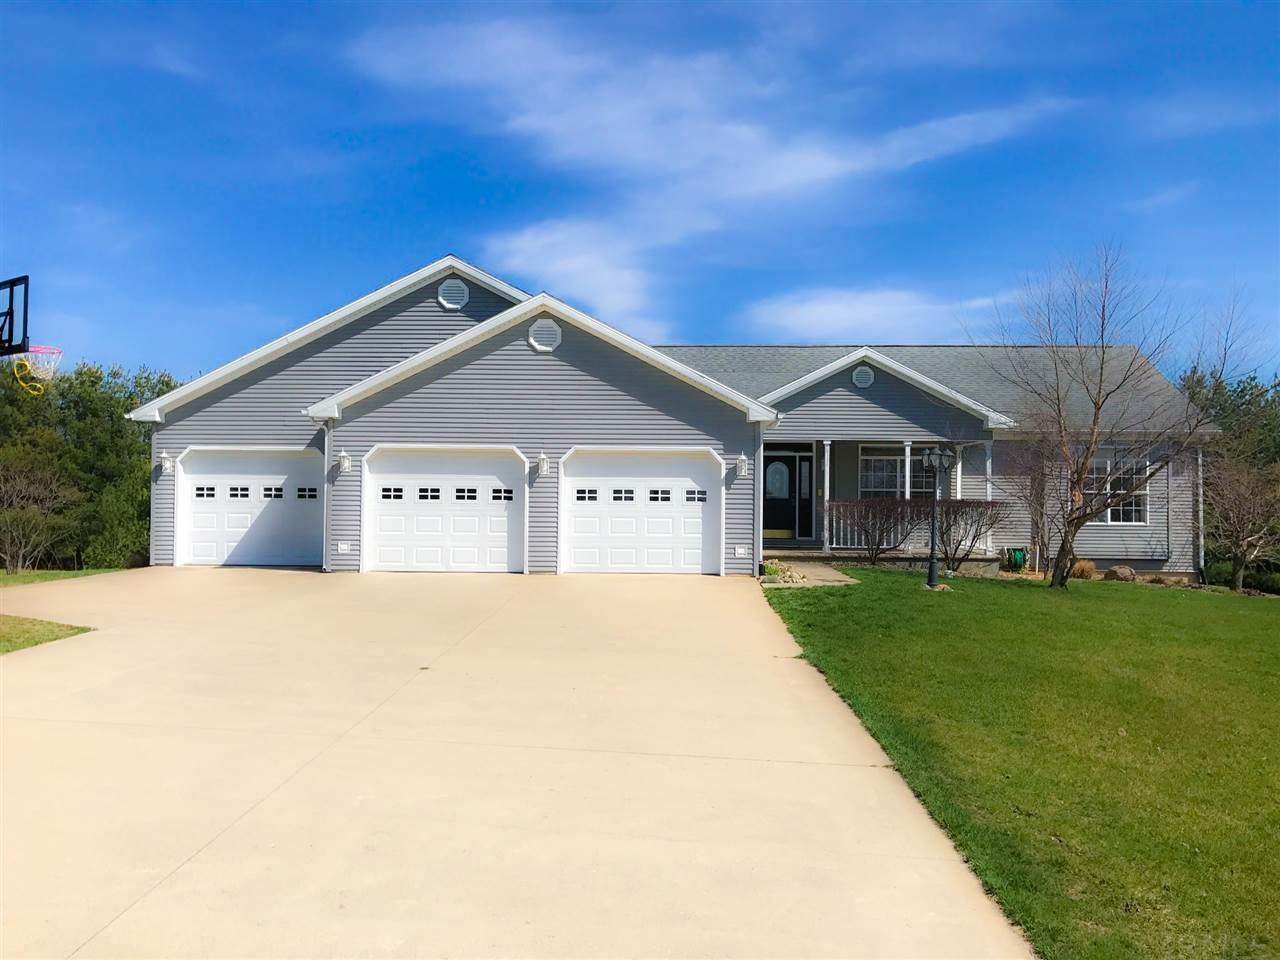 12200 N Camelot Milford, IN 46542